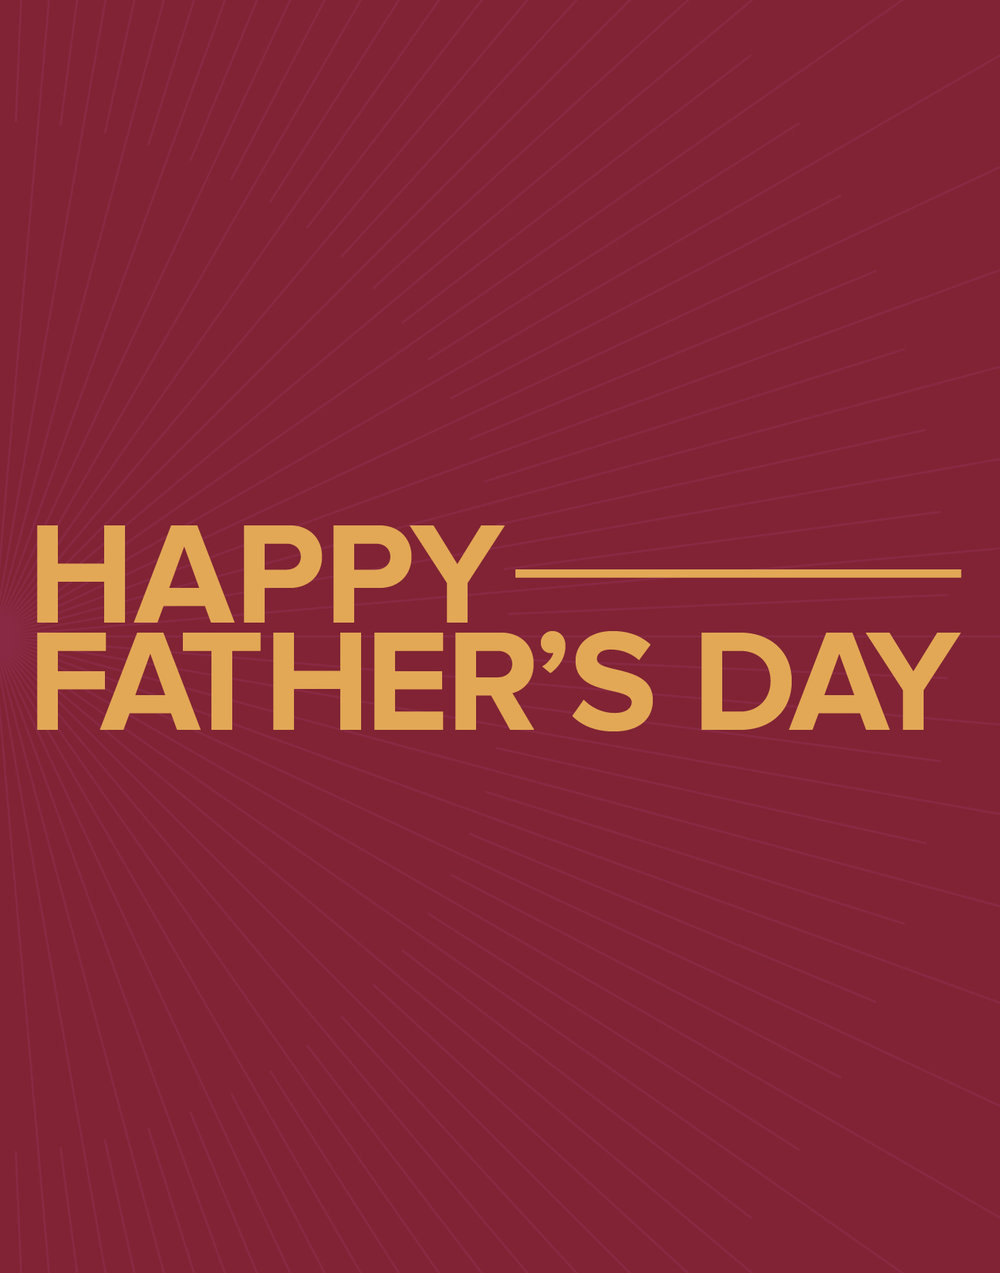 Father's Day Card-04 Crop.jpg